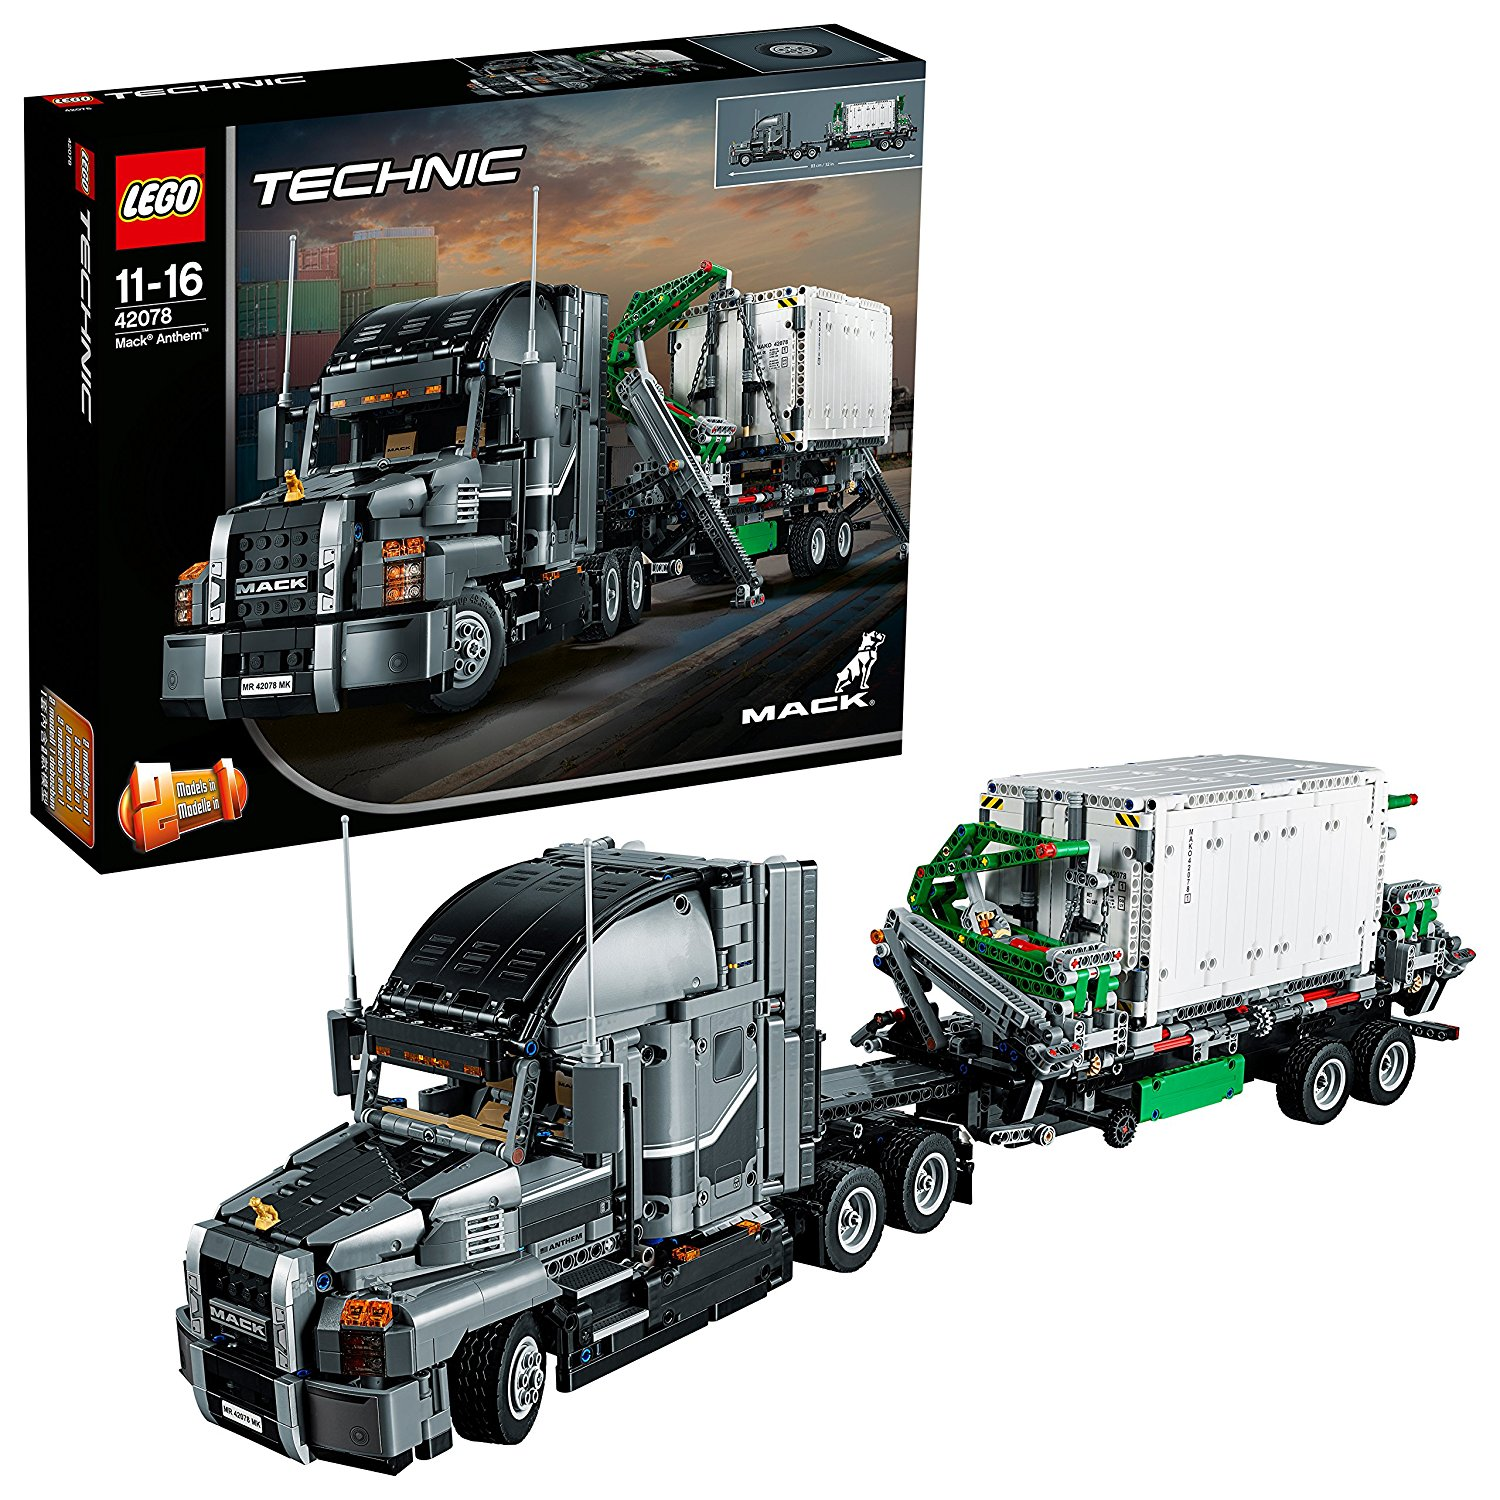 LEGO Technic Mack Anthem Semi Truck Building Kit and Engineering Toy for Kids and Teenagers, Top Gifts for Boys ( Piece).